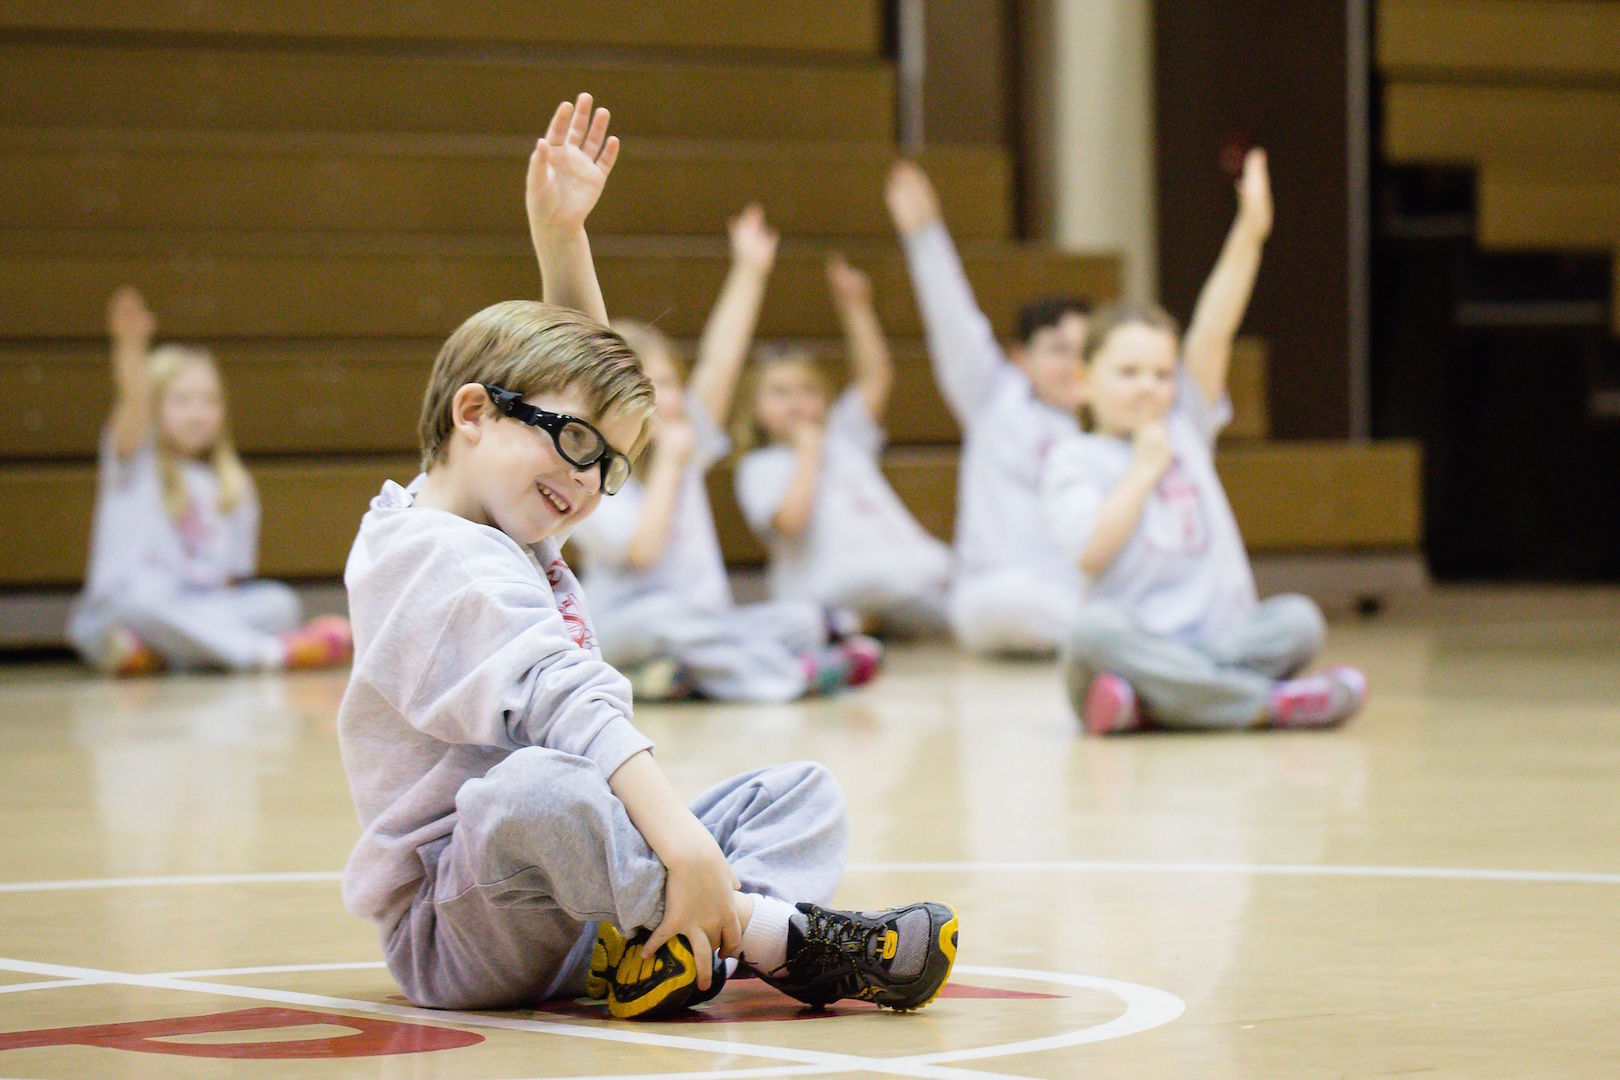 Student Charlie Jorgensen is pictured in gym class at St. Peter's R.C. School, where Spanish, library, physical education, art, music, technology and religion are taught at all grade levels, including pre-K. (Photo courtesy of Vita Bella Photography)